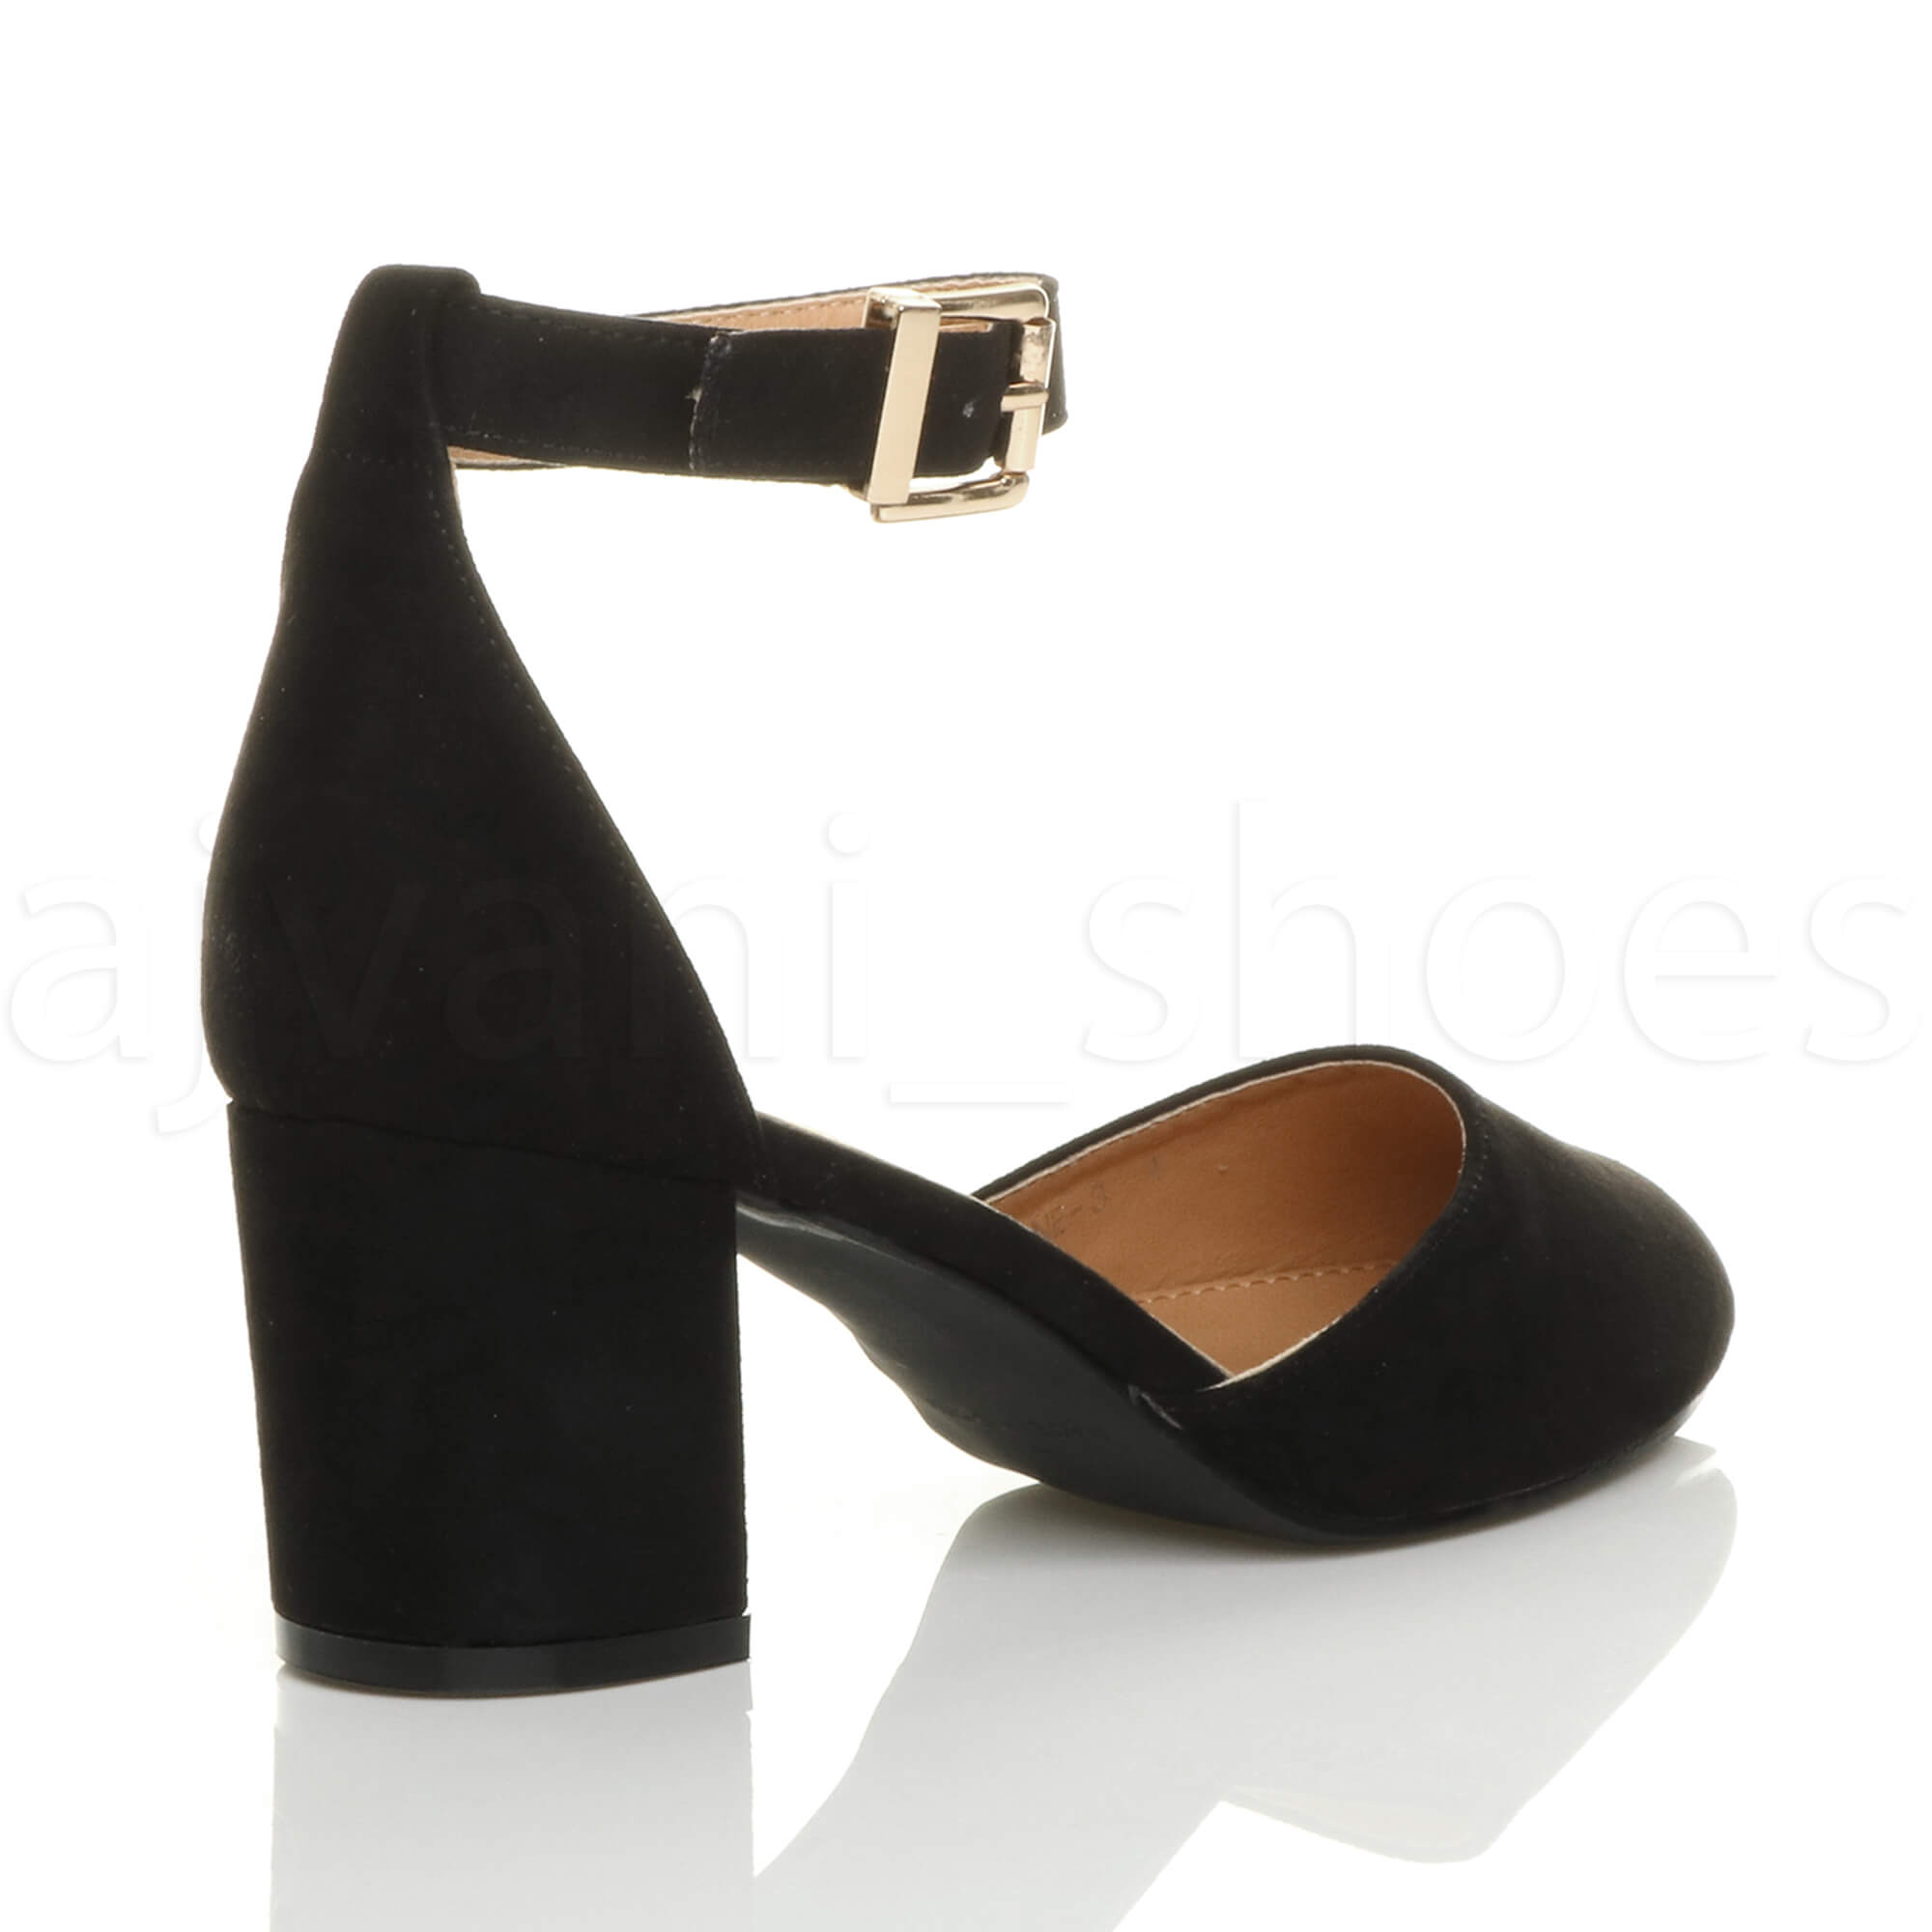 WOMENS-LADIES-LOW-MID-BLOCK-HEEL-ANKLE-STRAP-MARY-JANE-COURT-SHOES-SANDALS-SIZE thumbnail 21